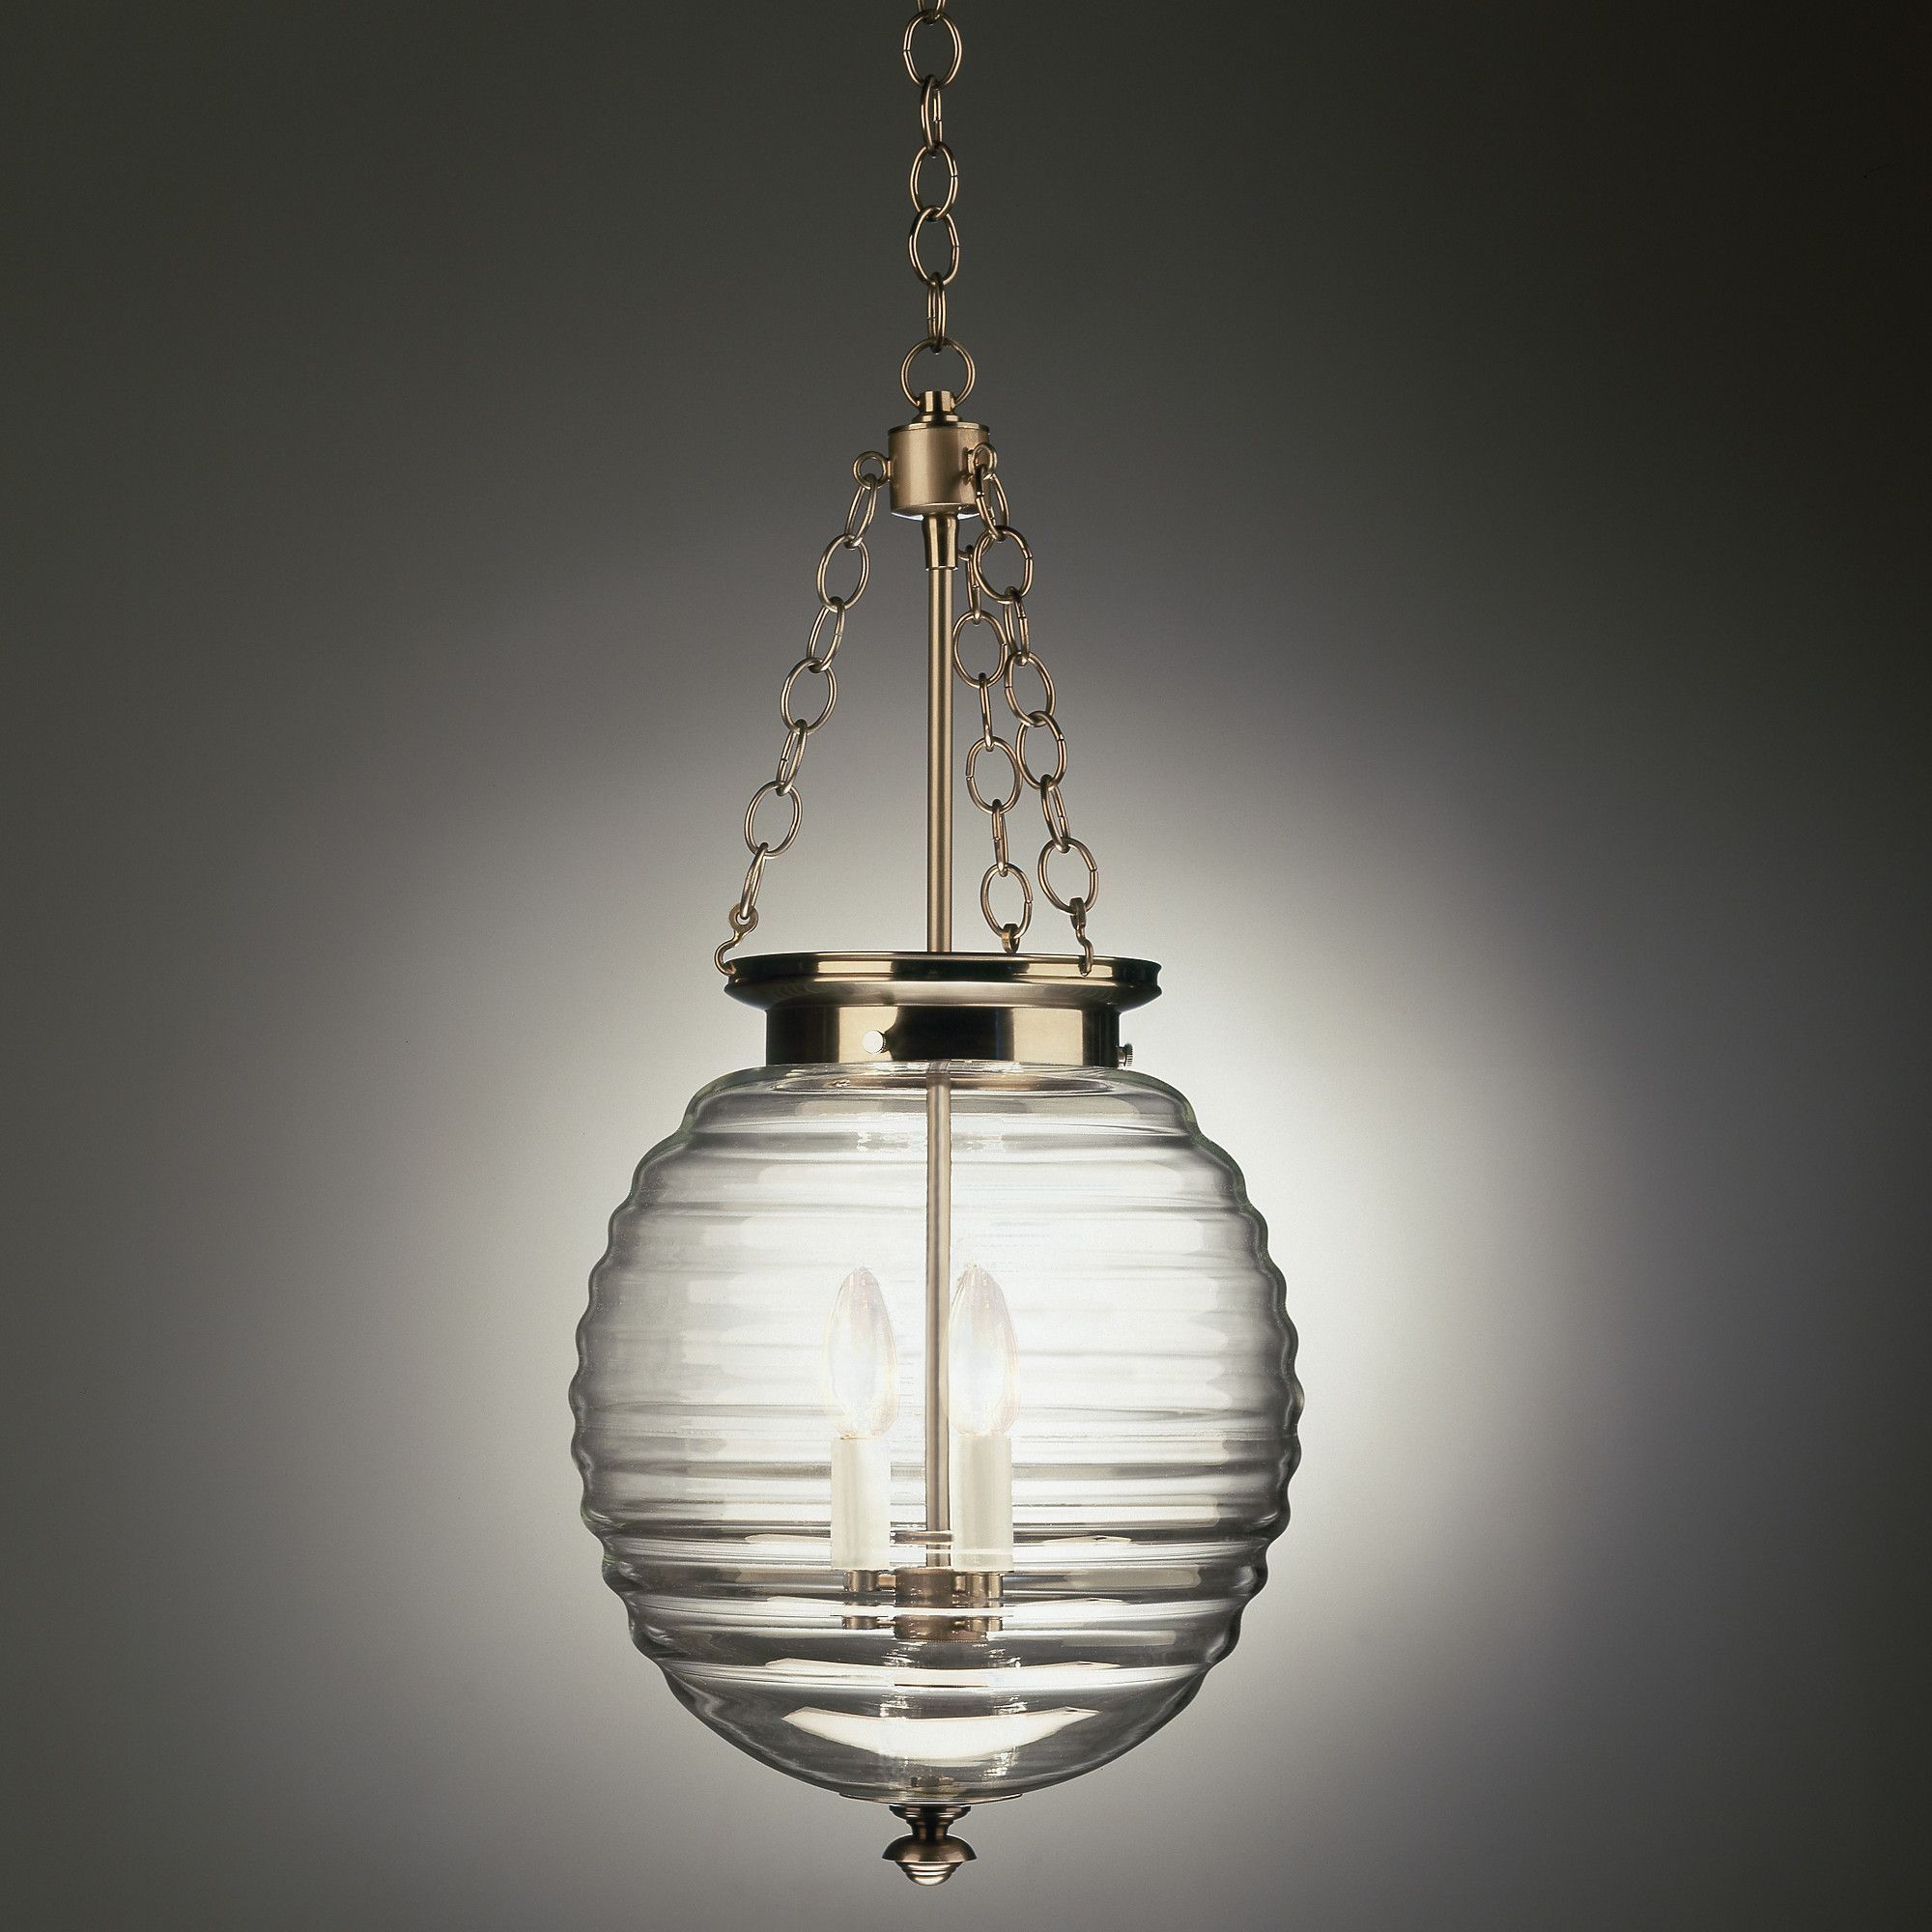 Beehive light foyer pendant products pinterest products